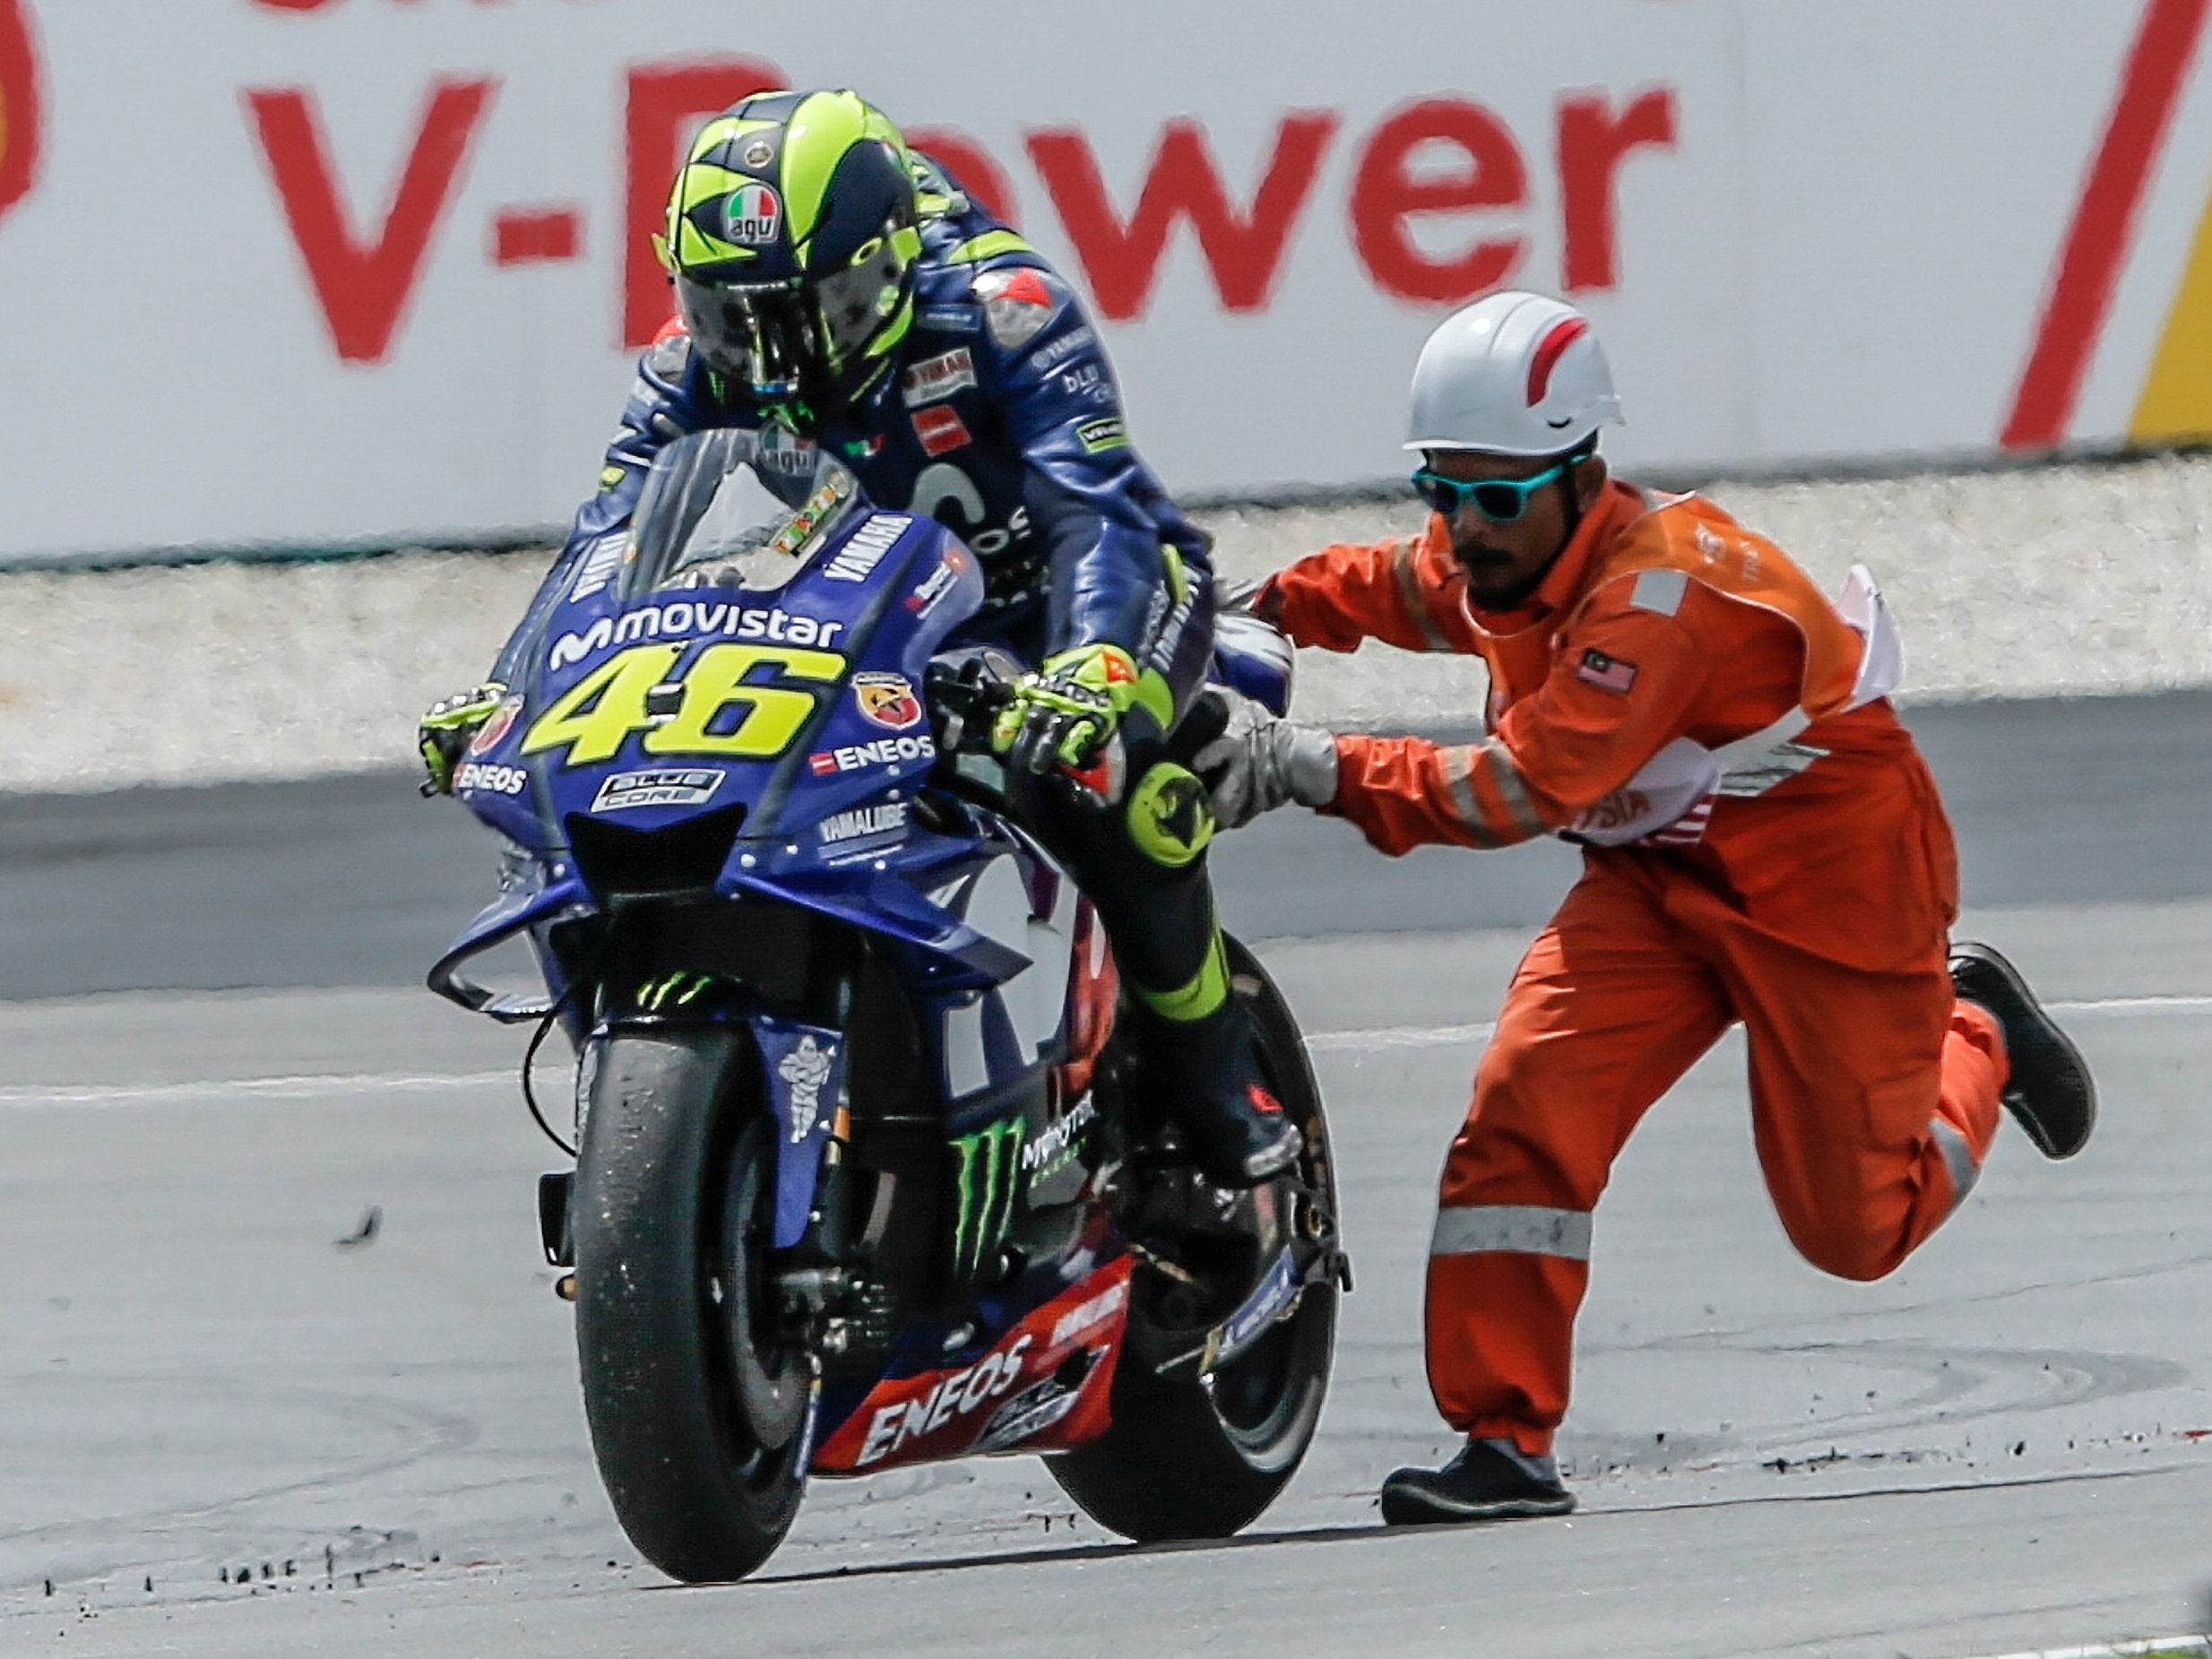 49bf2e29bfae6 valentino rossi - latest news, breaking stories and comment - The ...